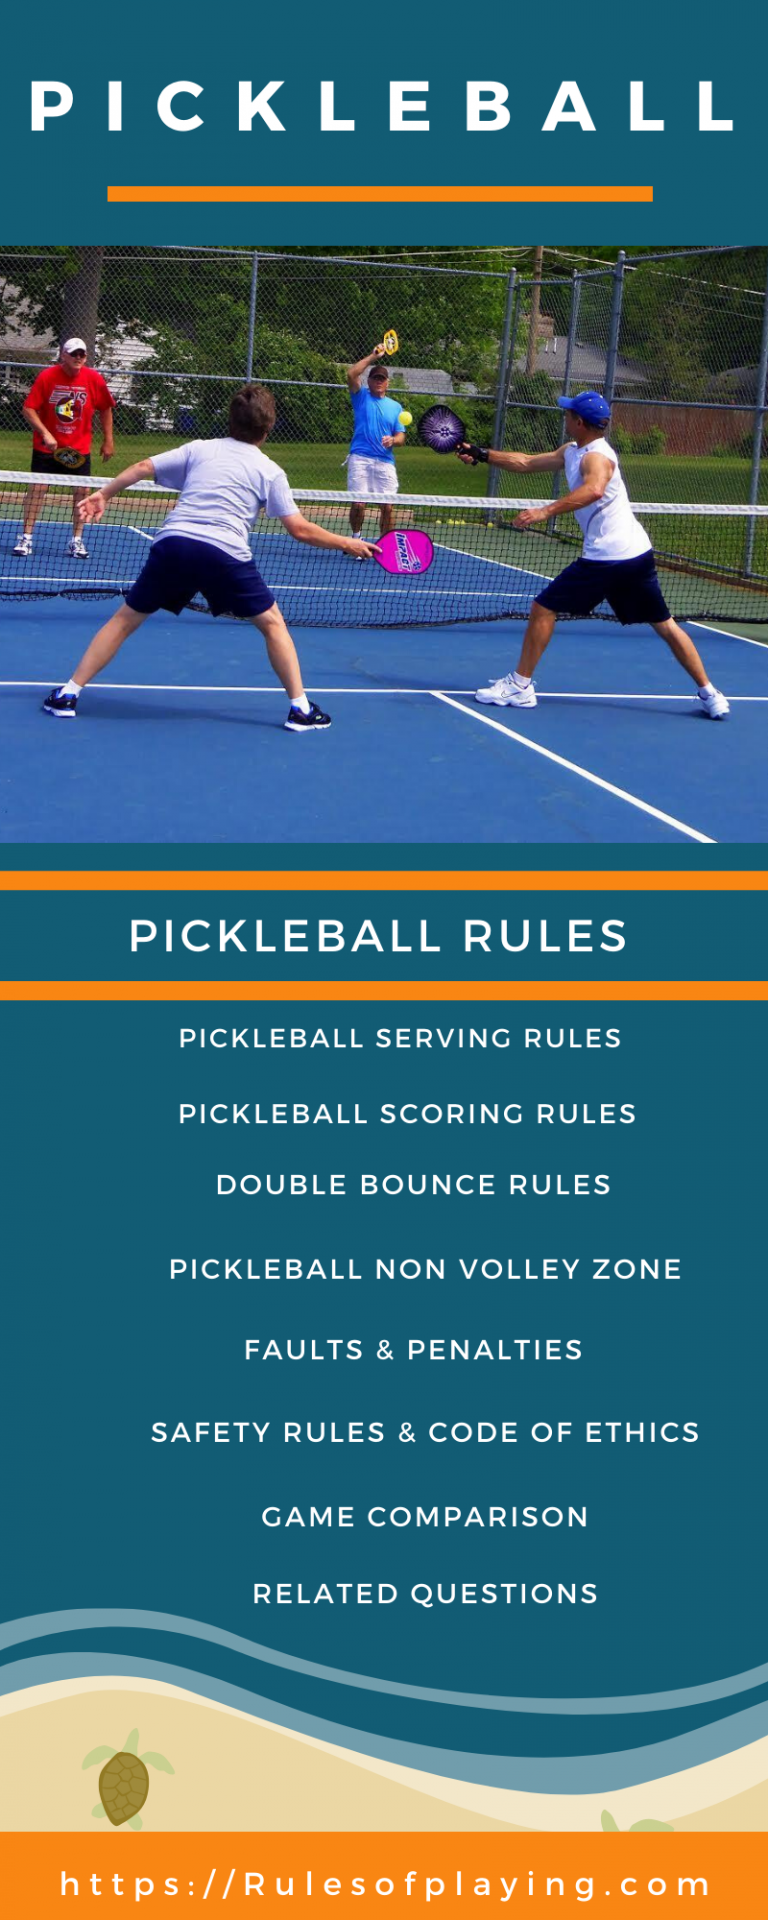 Pickleball Rules [ Scoring, Serving, NVZ, Faults Rules ] Players Guide